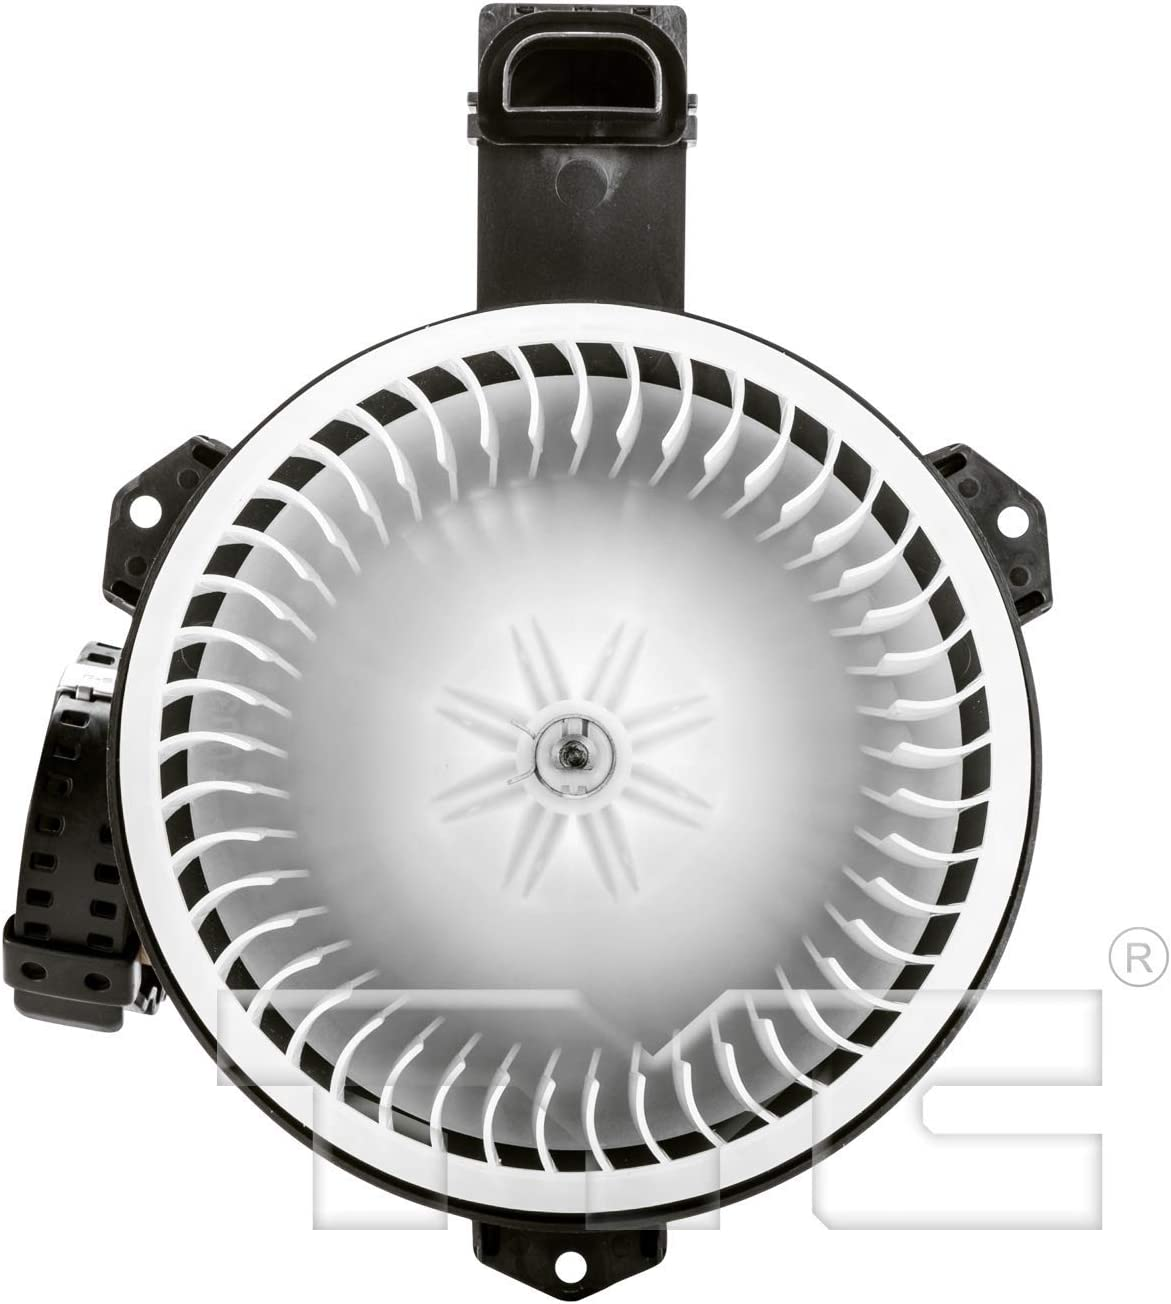 TYC Premium Quanlity With One Year Warranty Front HVAC Blower Motor For 2012 Honda CR-V